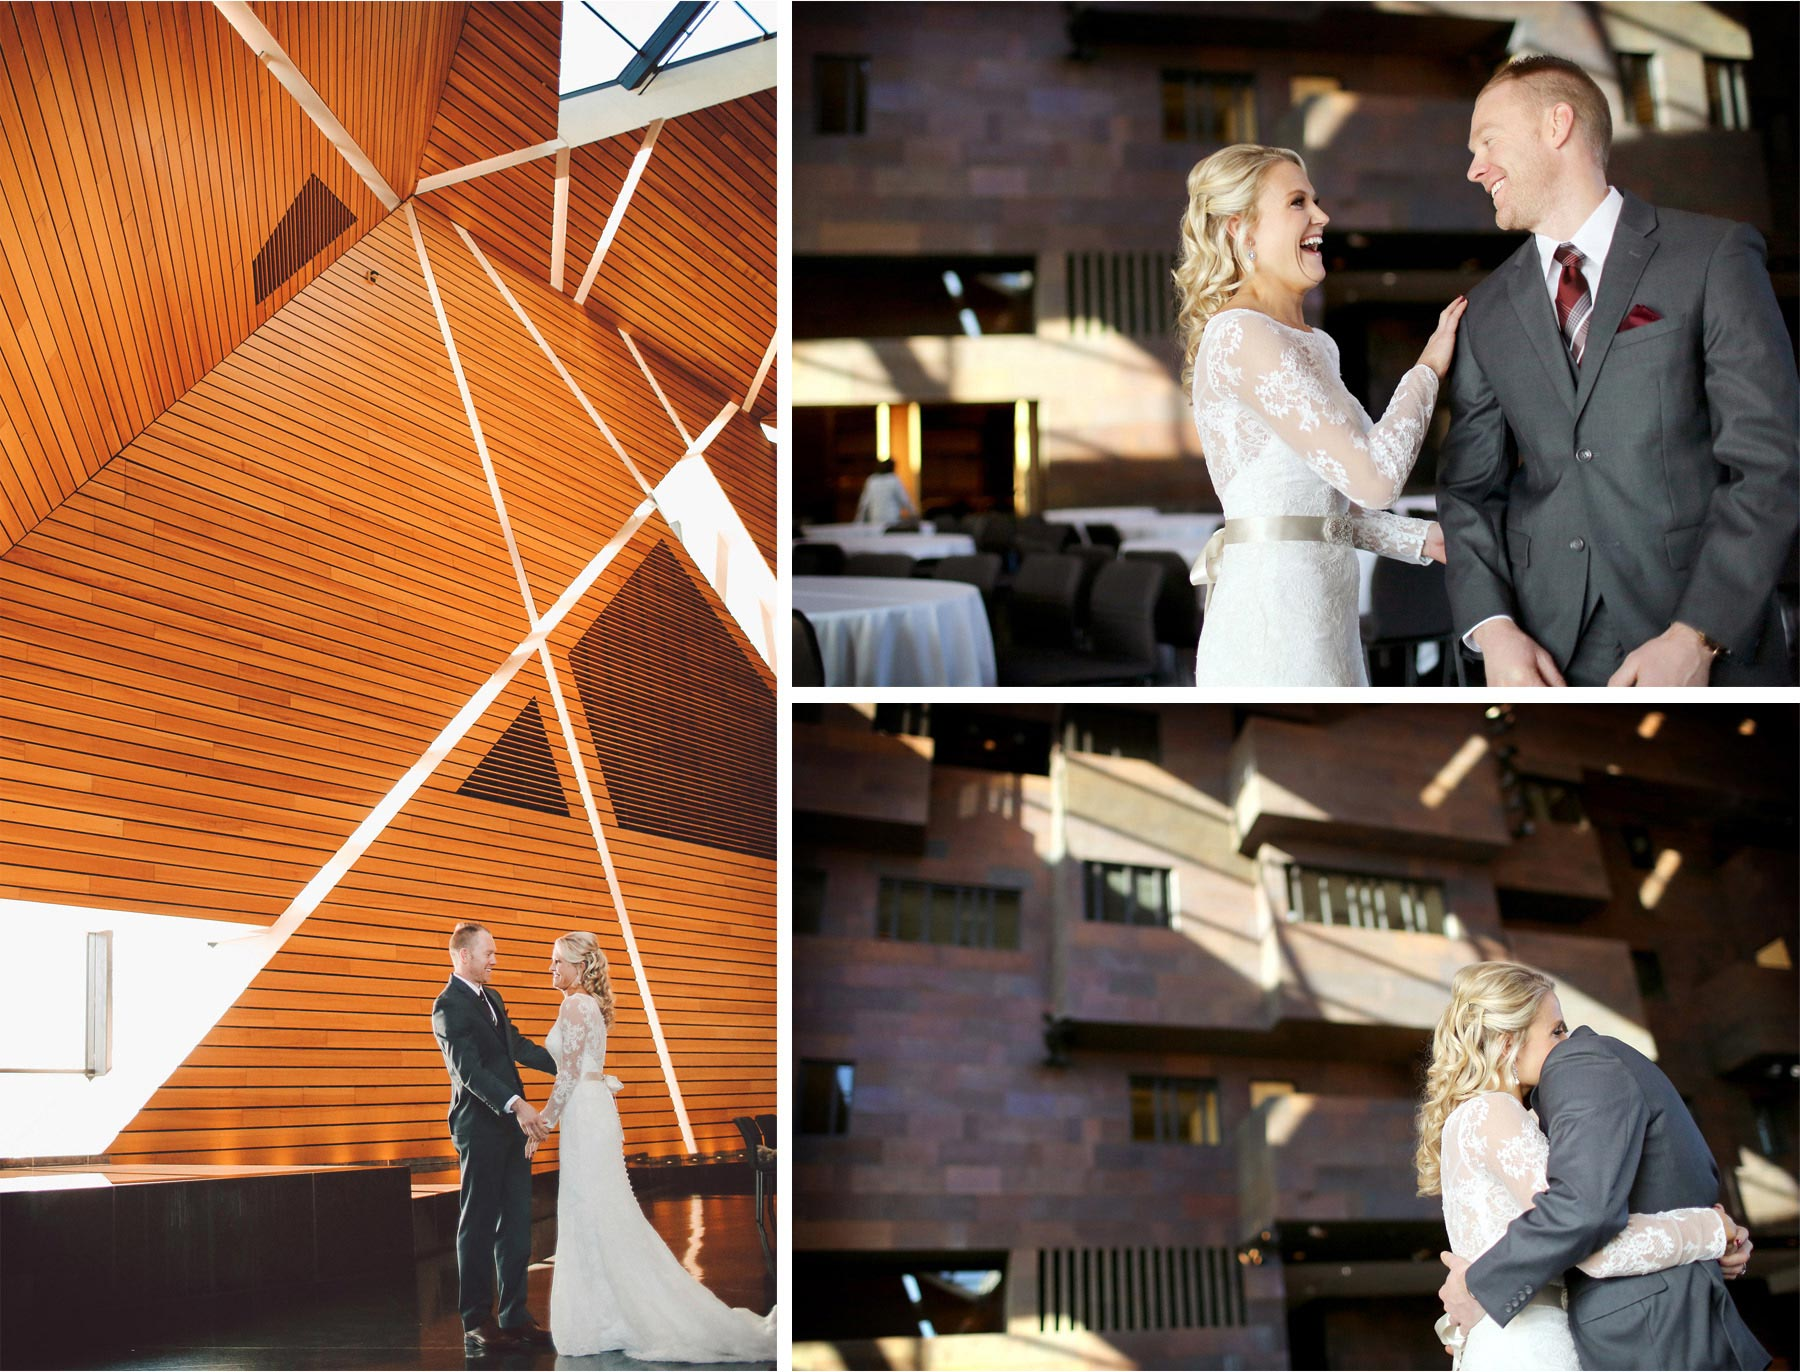 06-Minneapolis-Minnesota-Wedding-Photographer-by-Andrew-Vick-Photography-Winter-McNamara-Alumni-Center-First-Meeting-Look-Bride-Groom-Hug-Embrace-Vintage-Brittany-and-Joseph.jpg